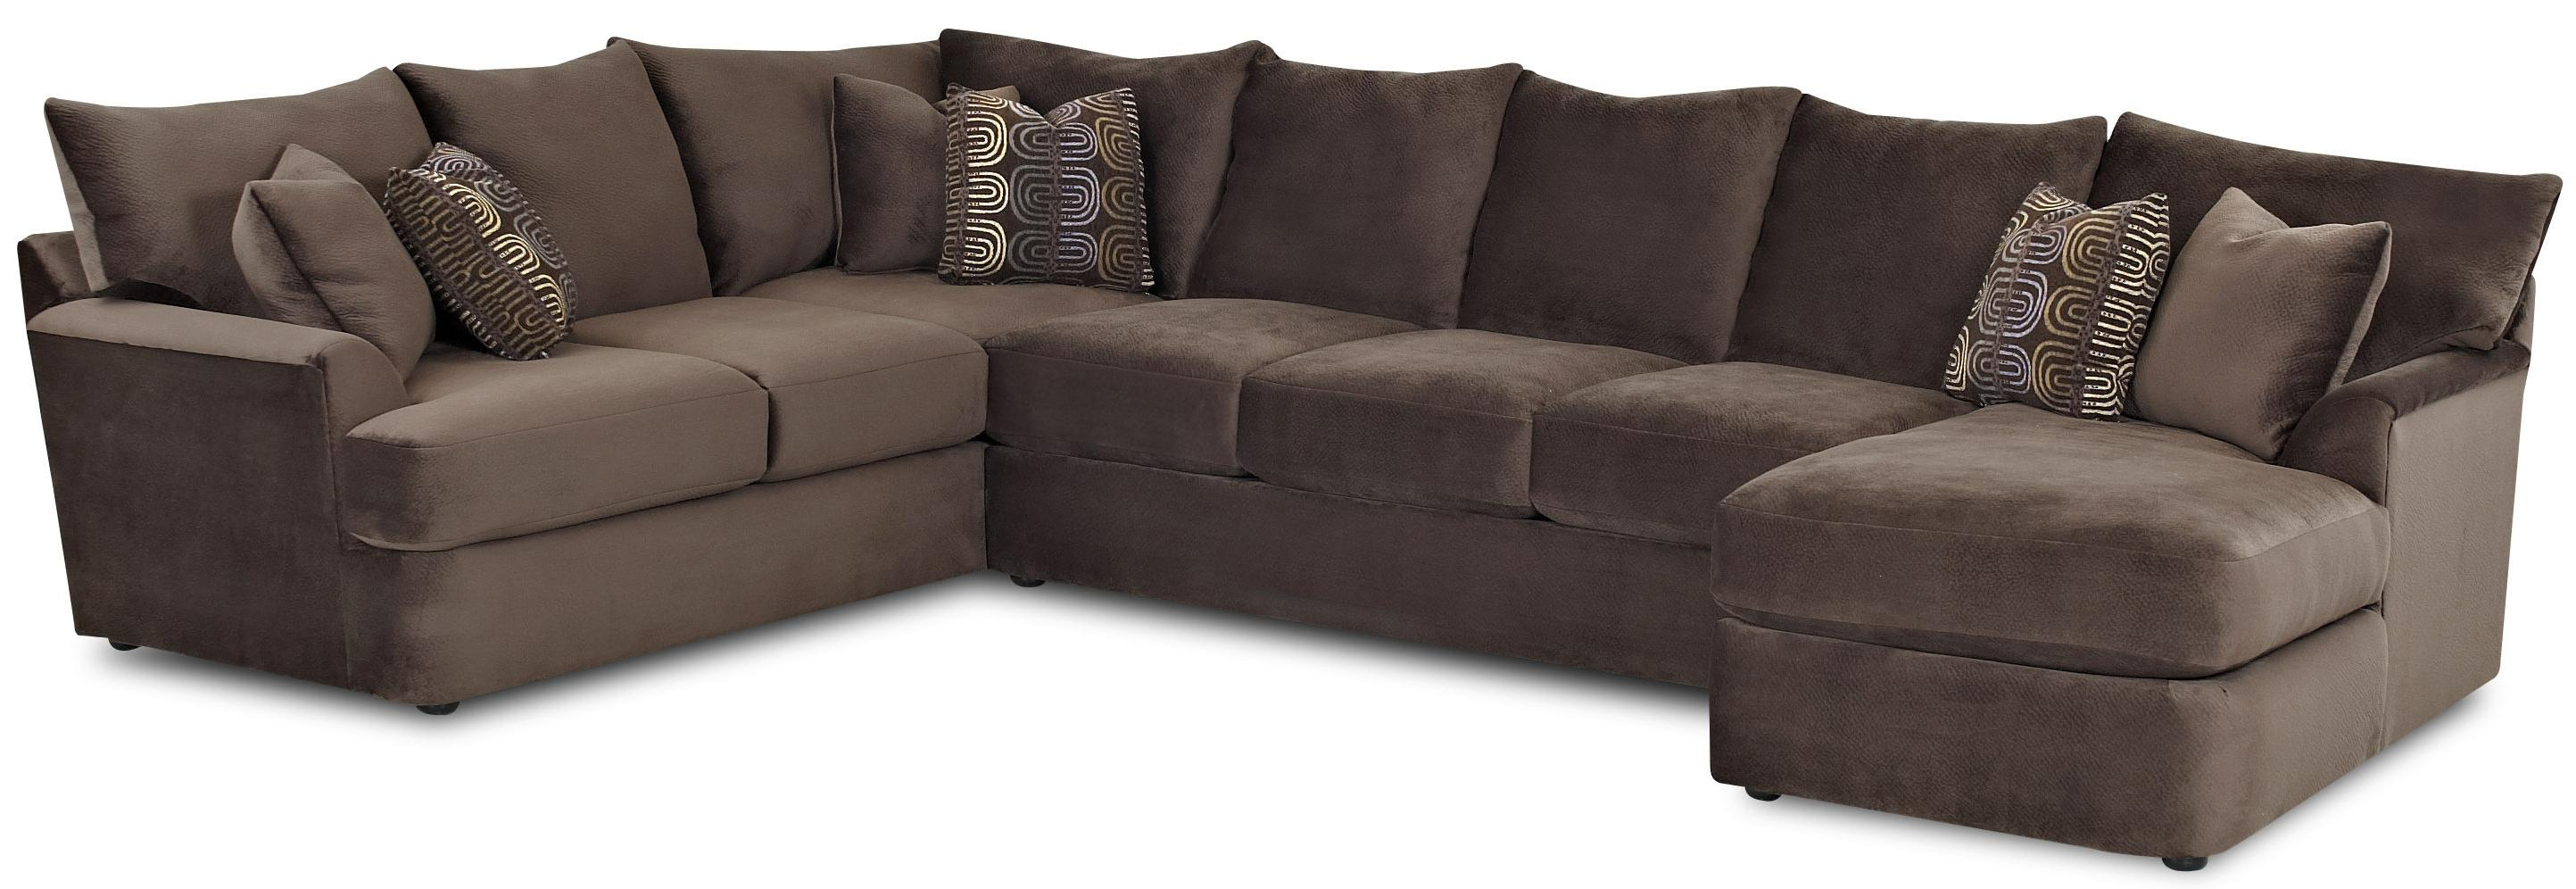 Klaussner Findley L Shaped Sectional Sofa with Right Chaise AHFA